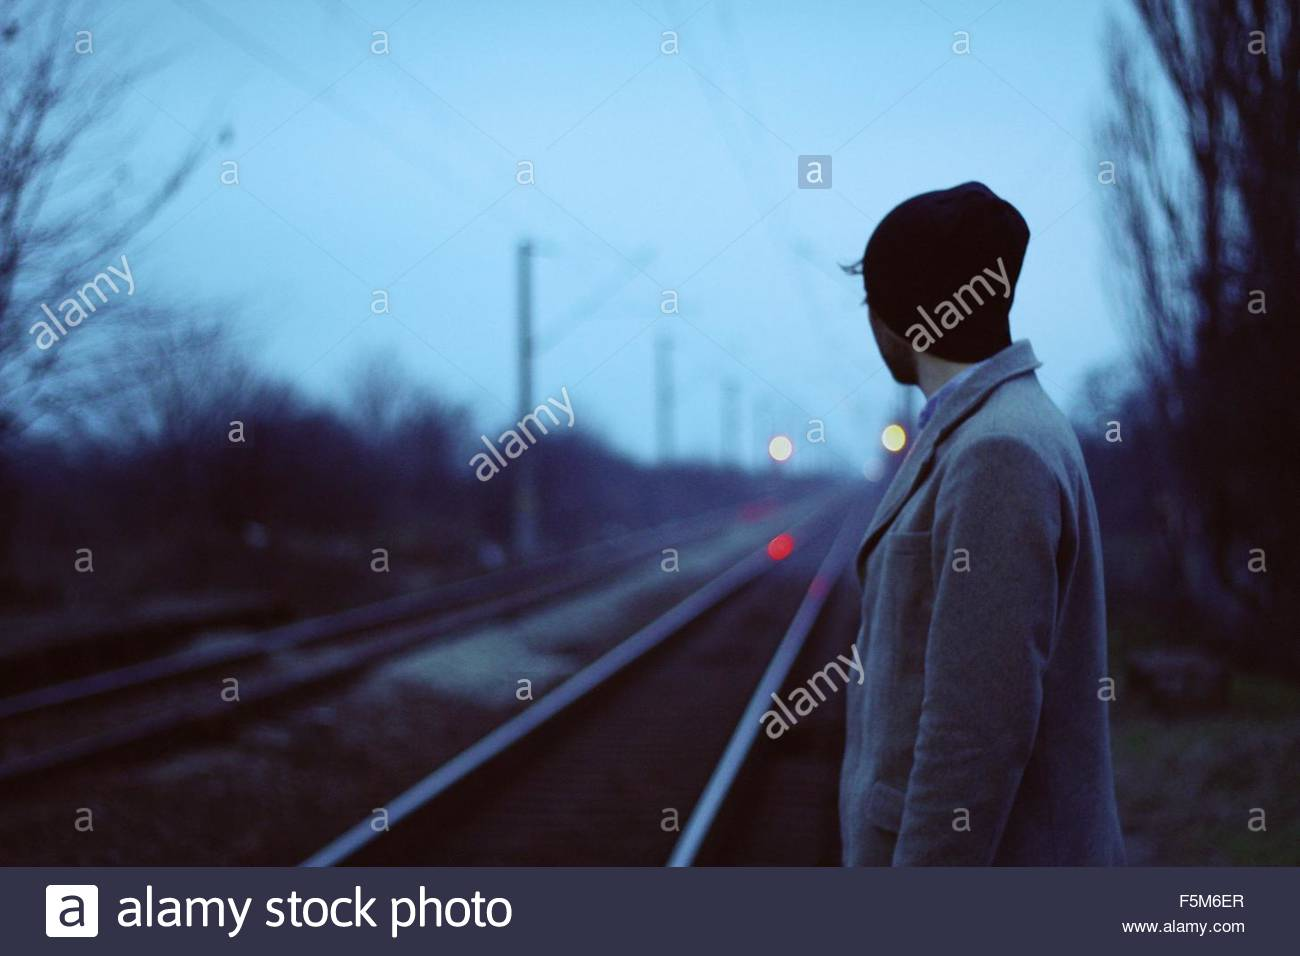 Young man looking out railway lines at dusk - Stock Image